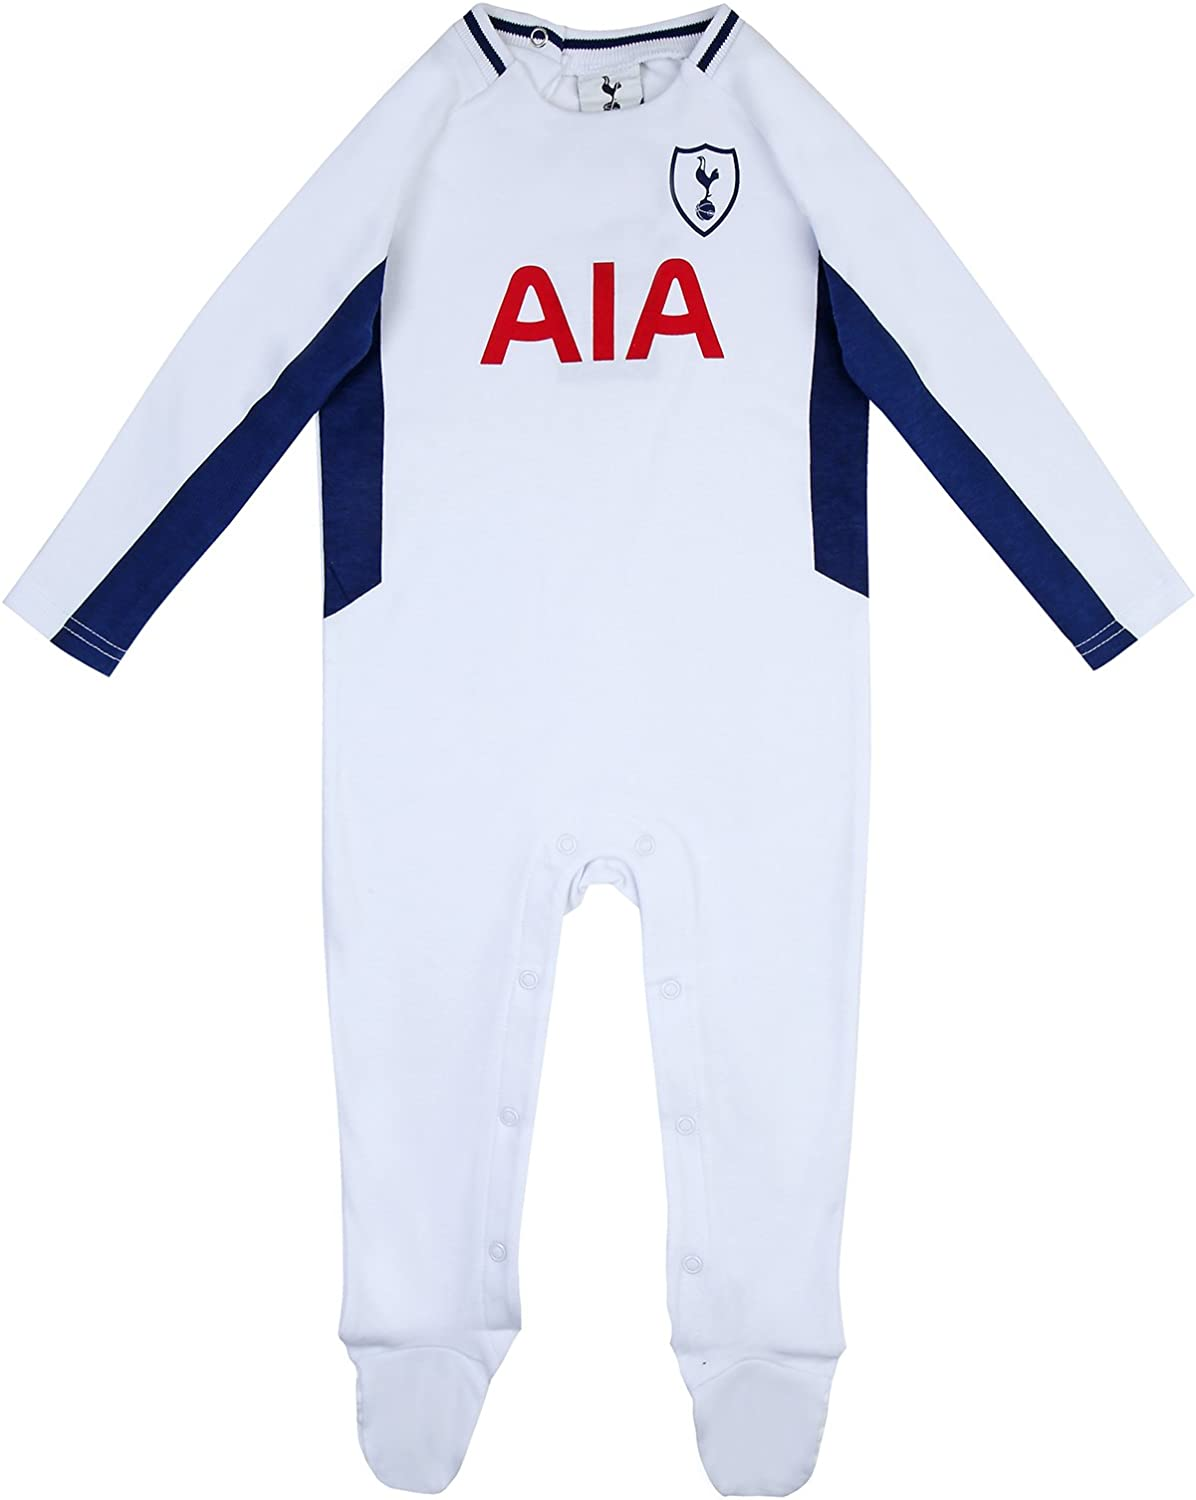 Bodysuits Baby Boys 0 24m Home And Away Kits Tottenham Baby Grows Spurs Bodysuit Babygrow Thfc Tottenham Baby Grow Tottenham Hotspur Shirt Kubicolab It